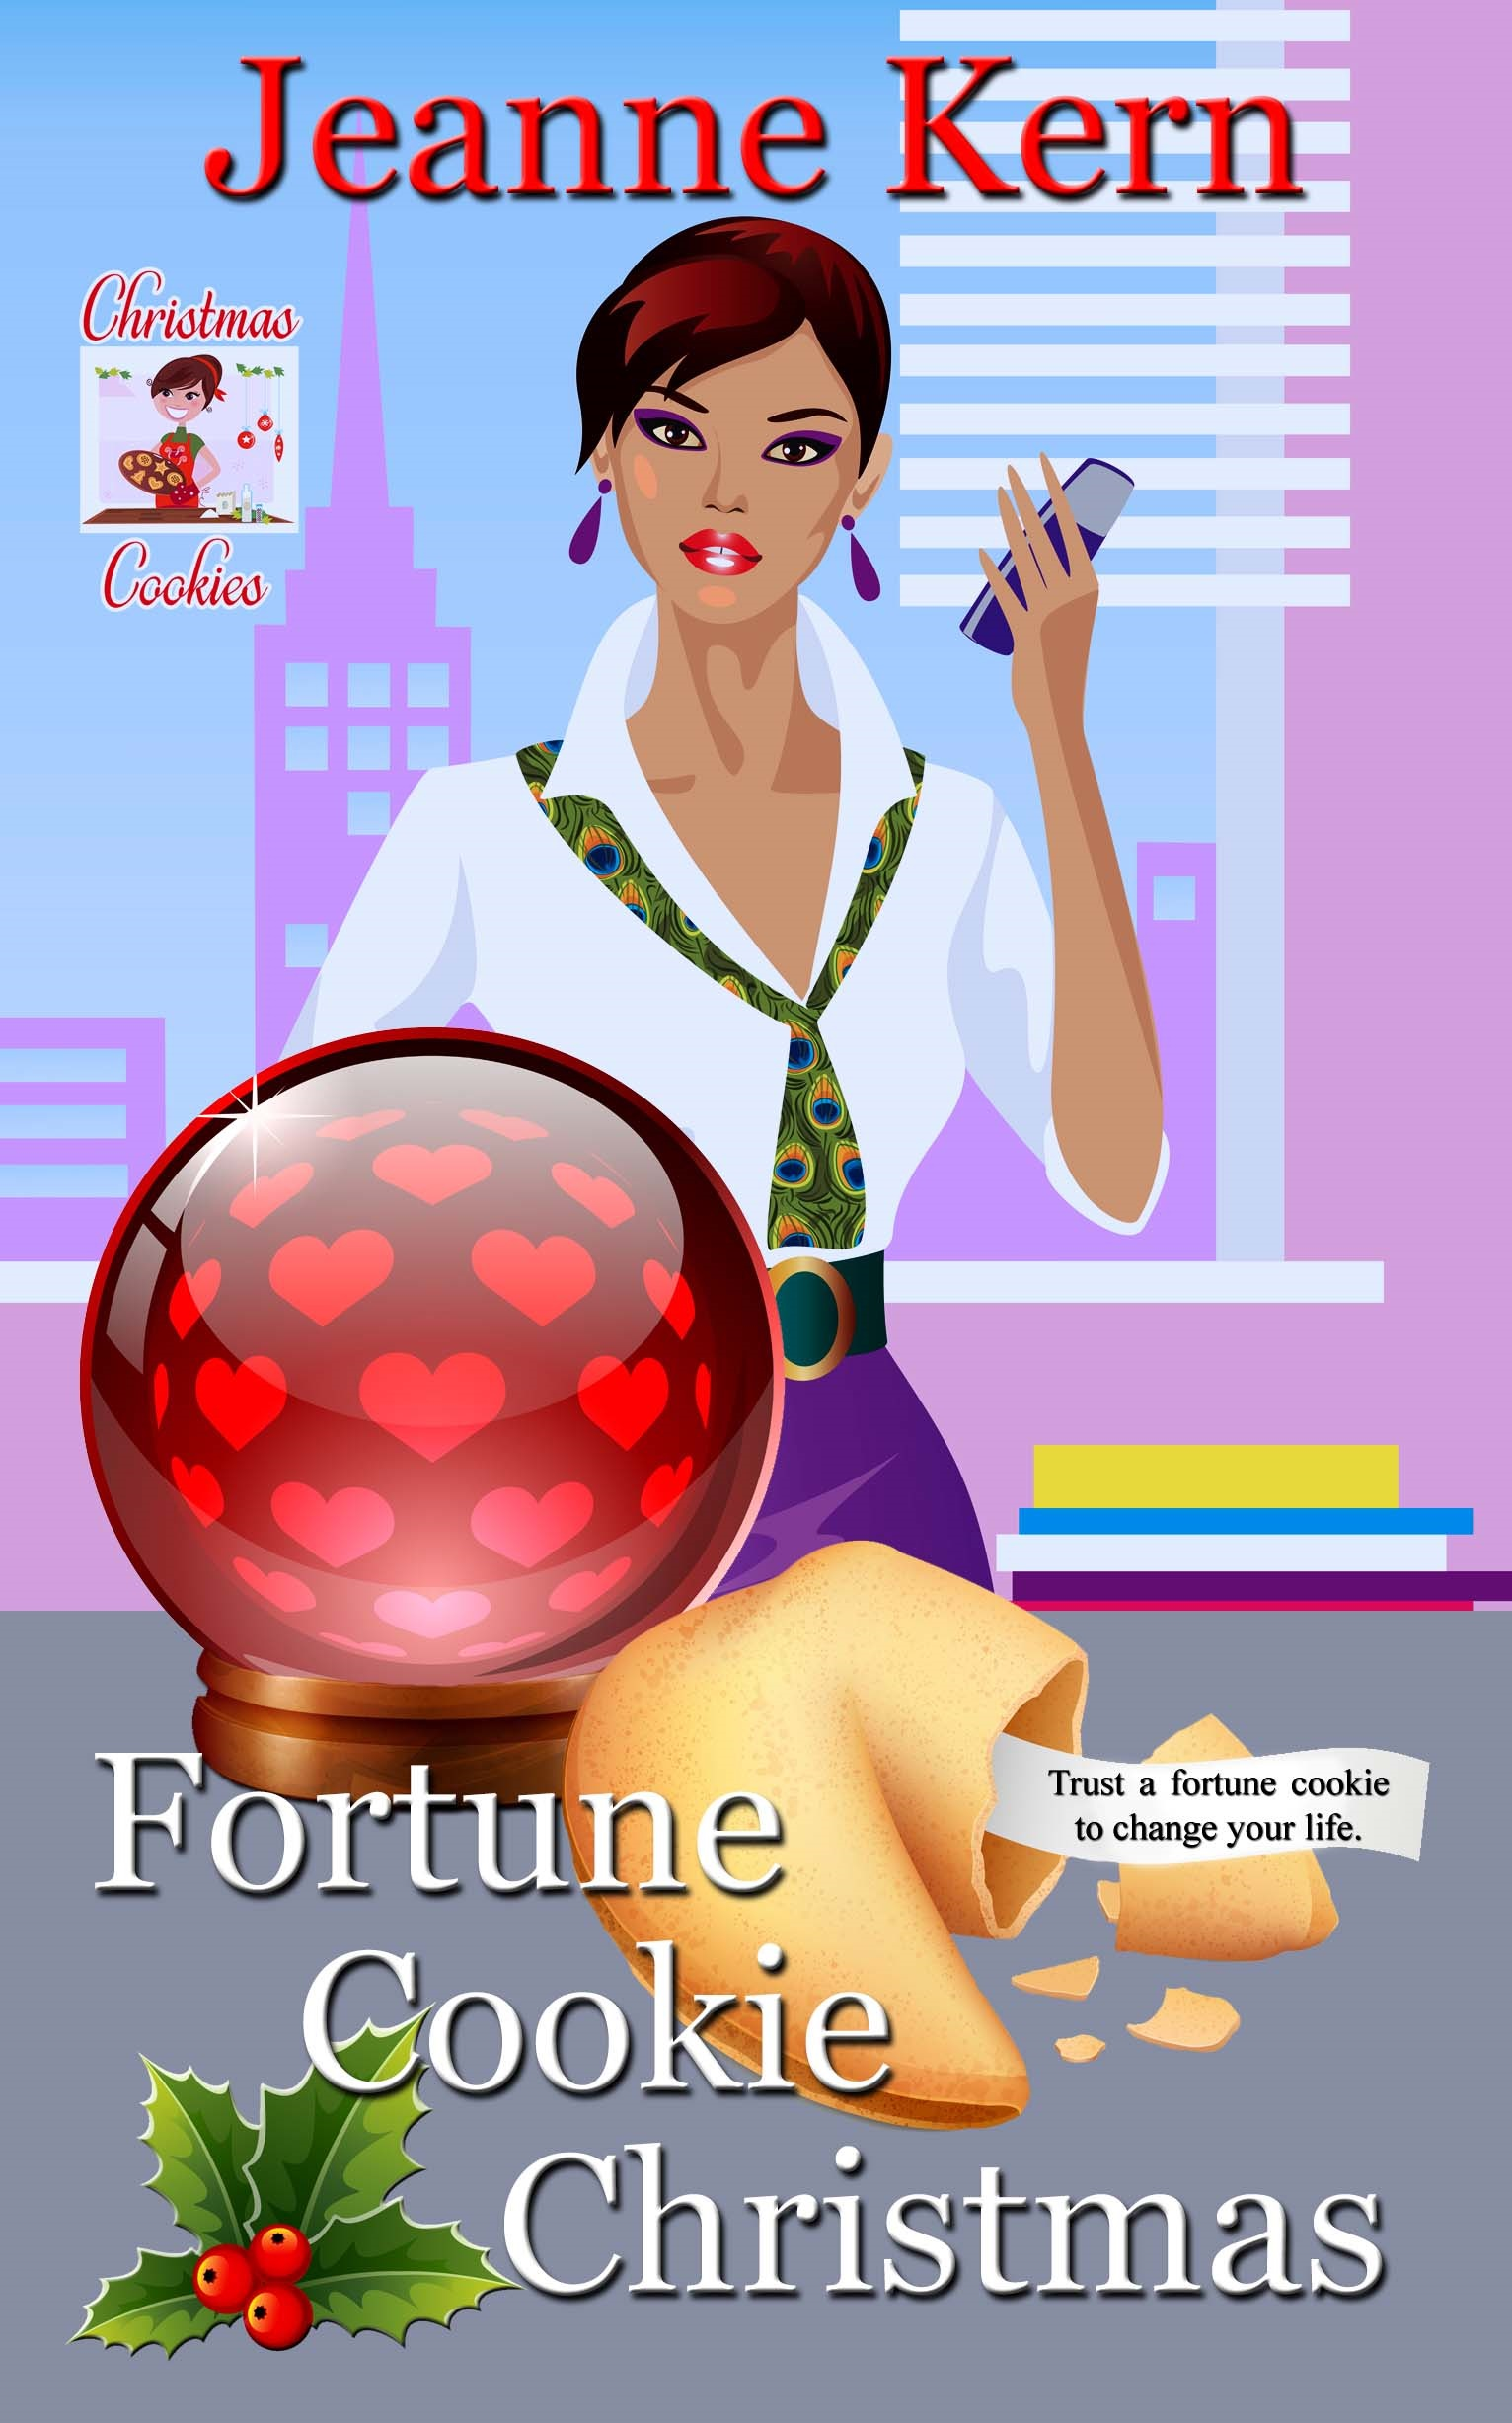 image shows cover of book Fortune Cookie Christmas